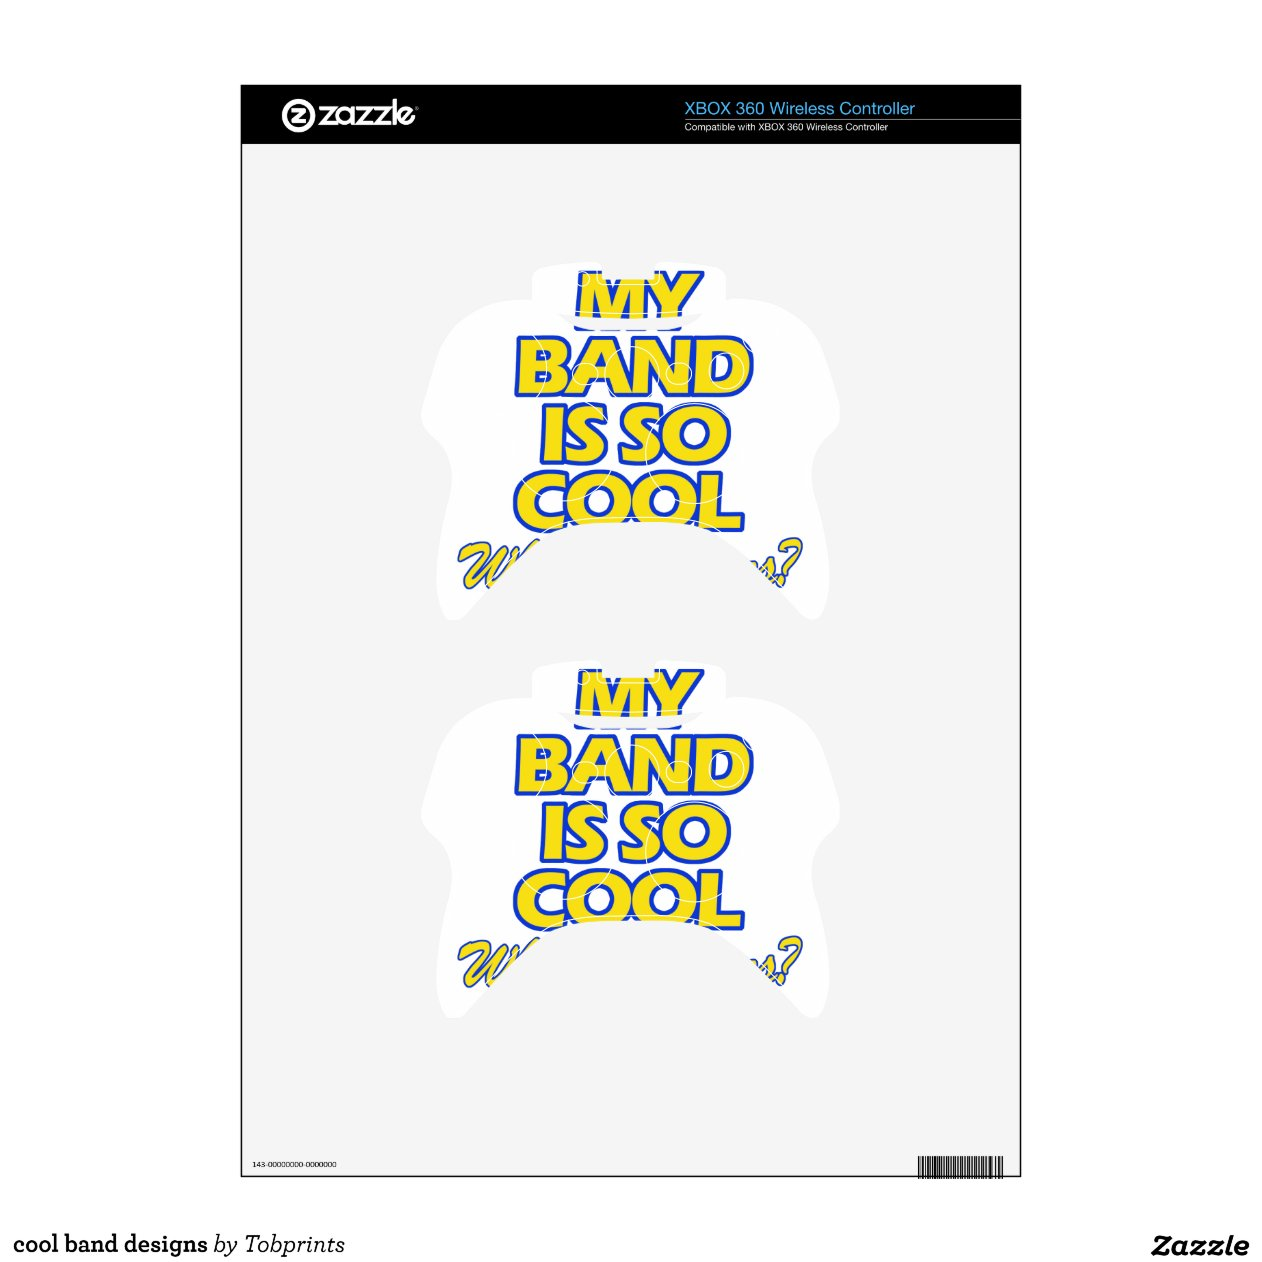 hight resolution of  cool band designs xbox 360 controller skin r0cd91dc40a364026b537dcfee60773d4 fhl4f 8byvr 1200 view padding 5b0 452380952380952 2c0 2c0 452380952380952